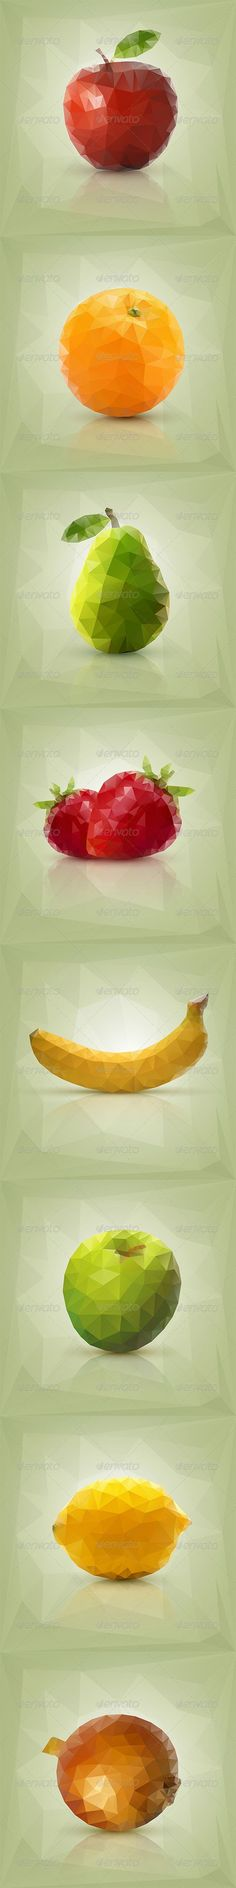 Triangle Polygon Fruit Vector Illustrations - Food Objects: